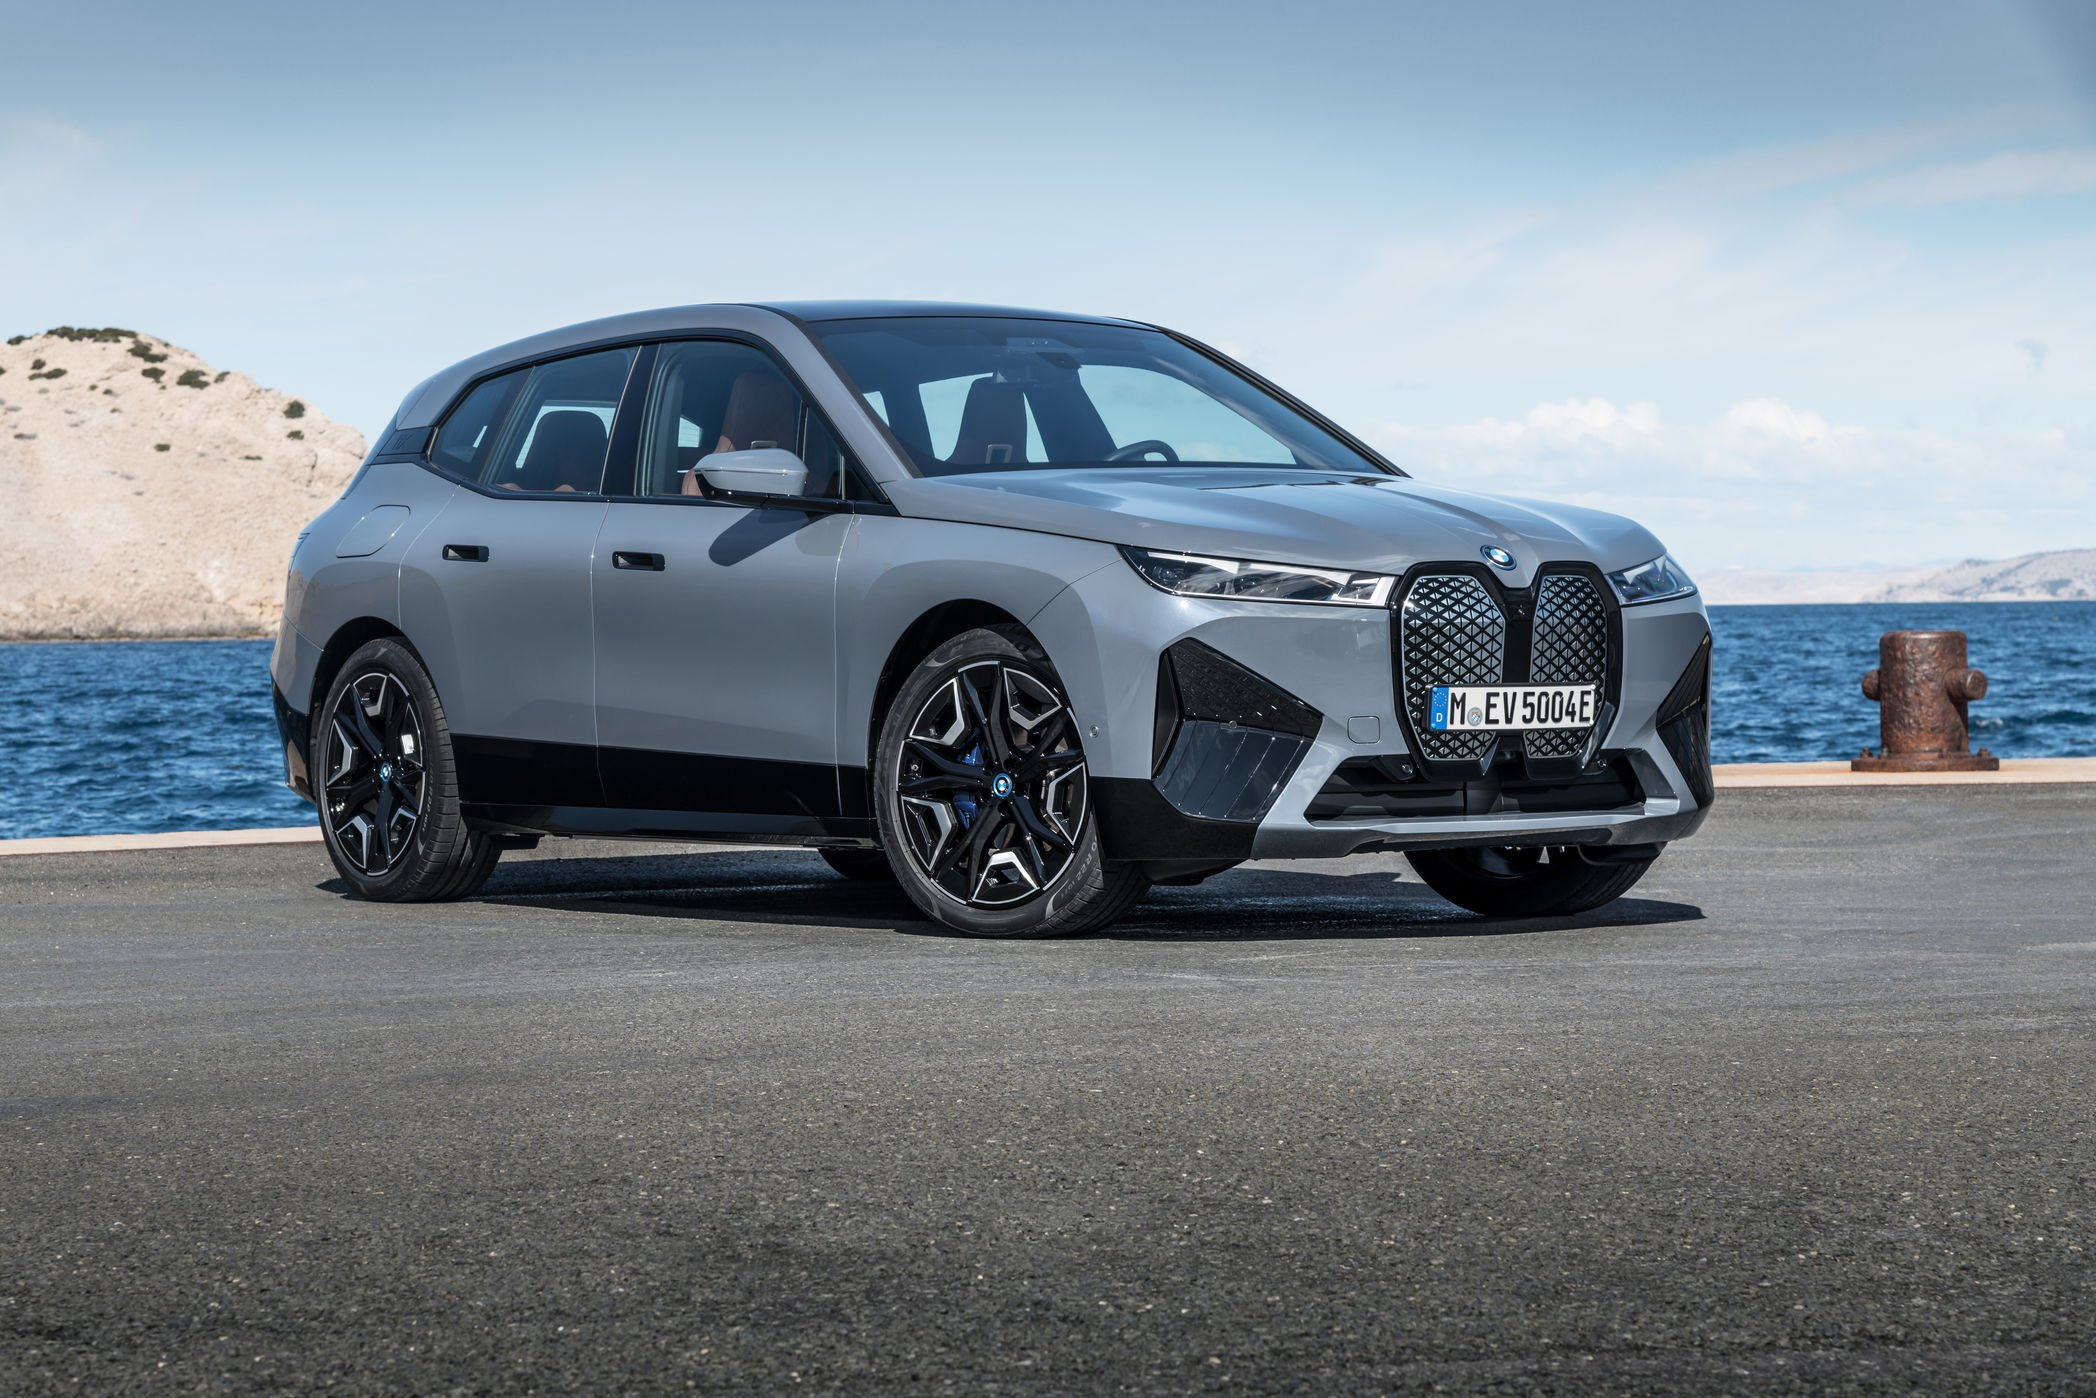 BMW takes another step on BEV mission with iX, i4 | Automotive News